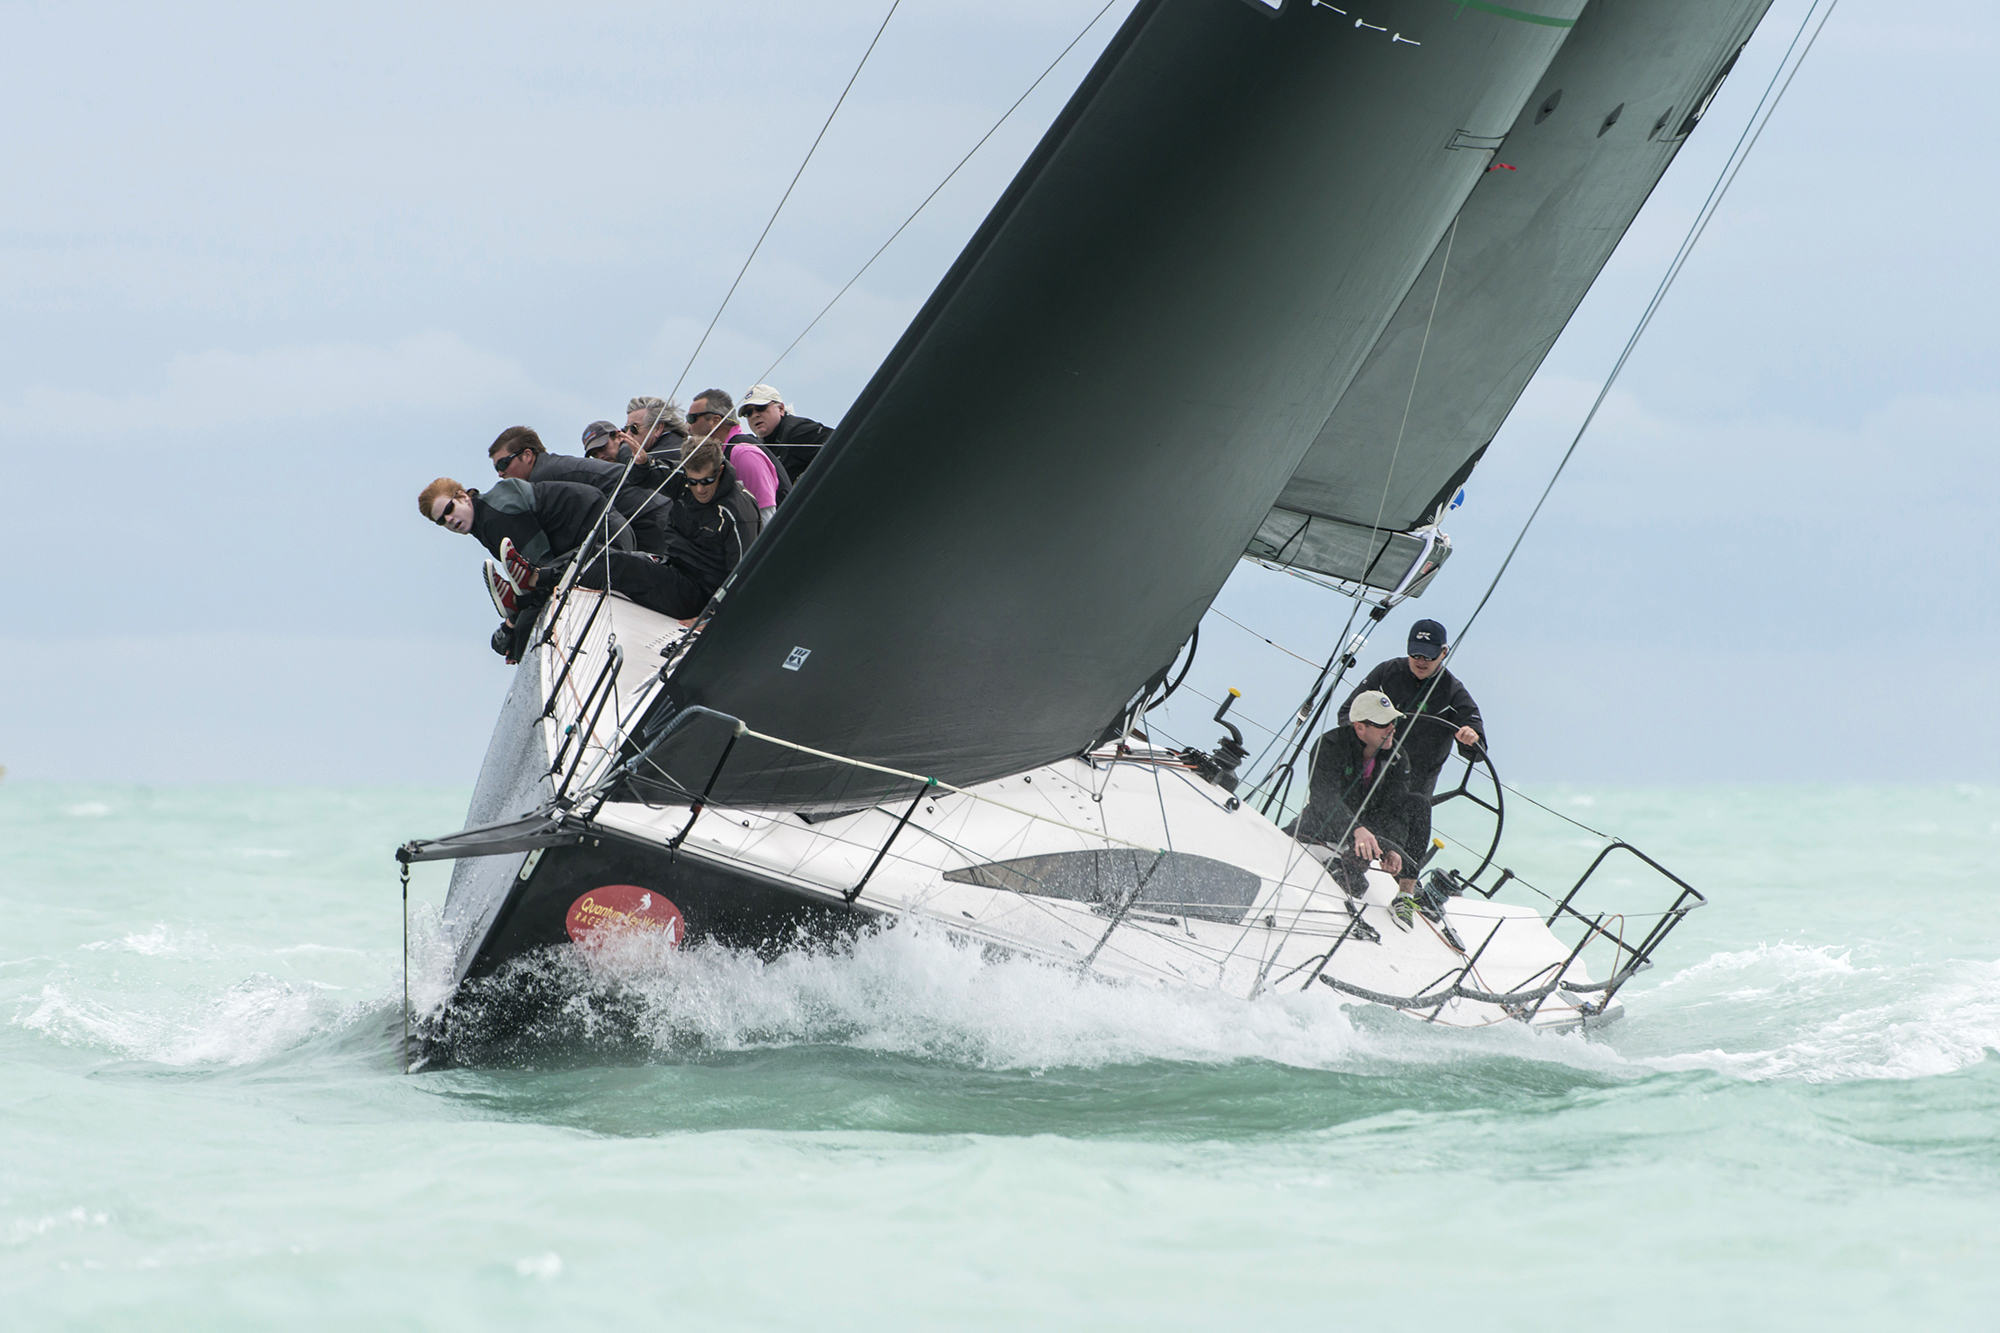 The Sydney 43 CHRISTOPHER DRAGON won her division at Key West Race Week 2016 with eight firsts and a second sailing with a full inventory of Uni-Titanium upwind sails.